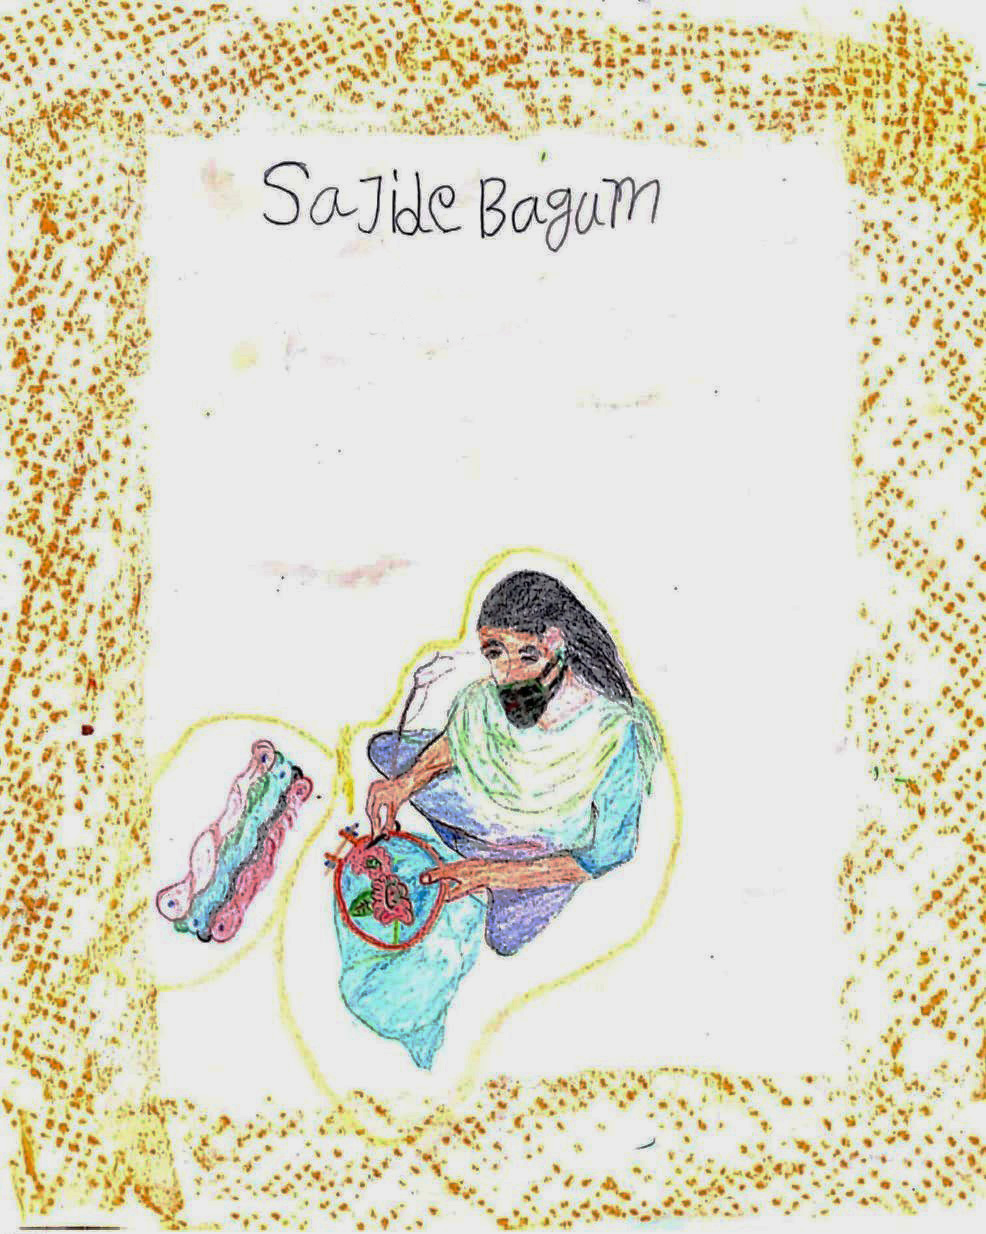 Women Life, Livelihood and Leisure, illustration by Sajide Begum